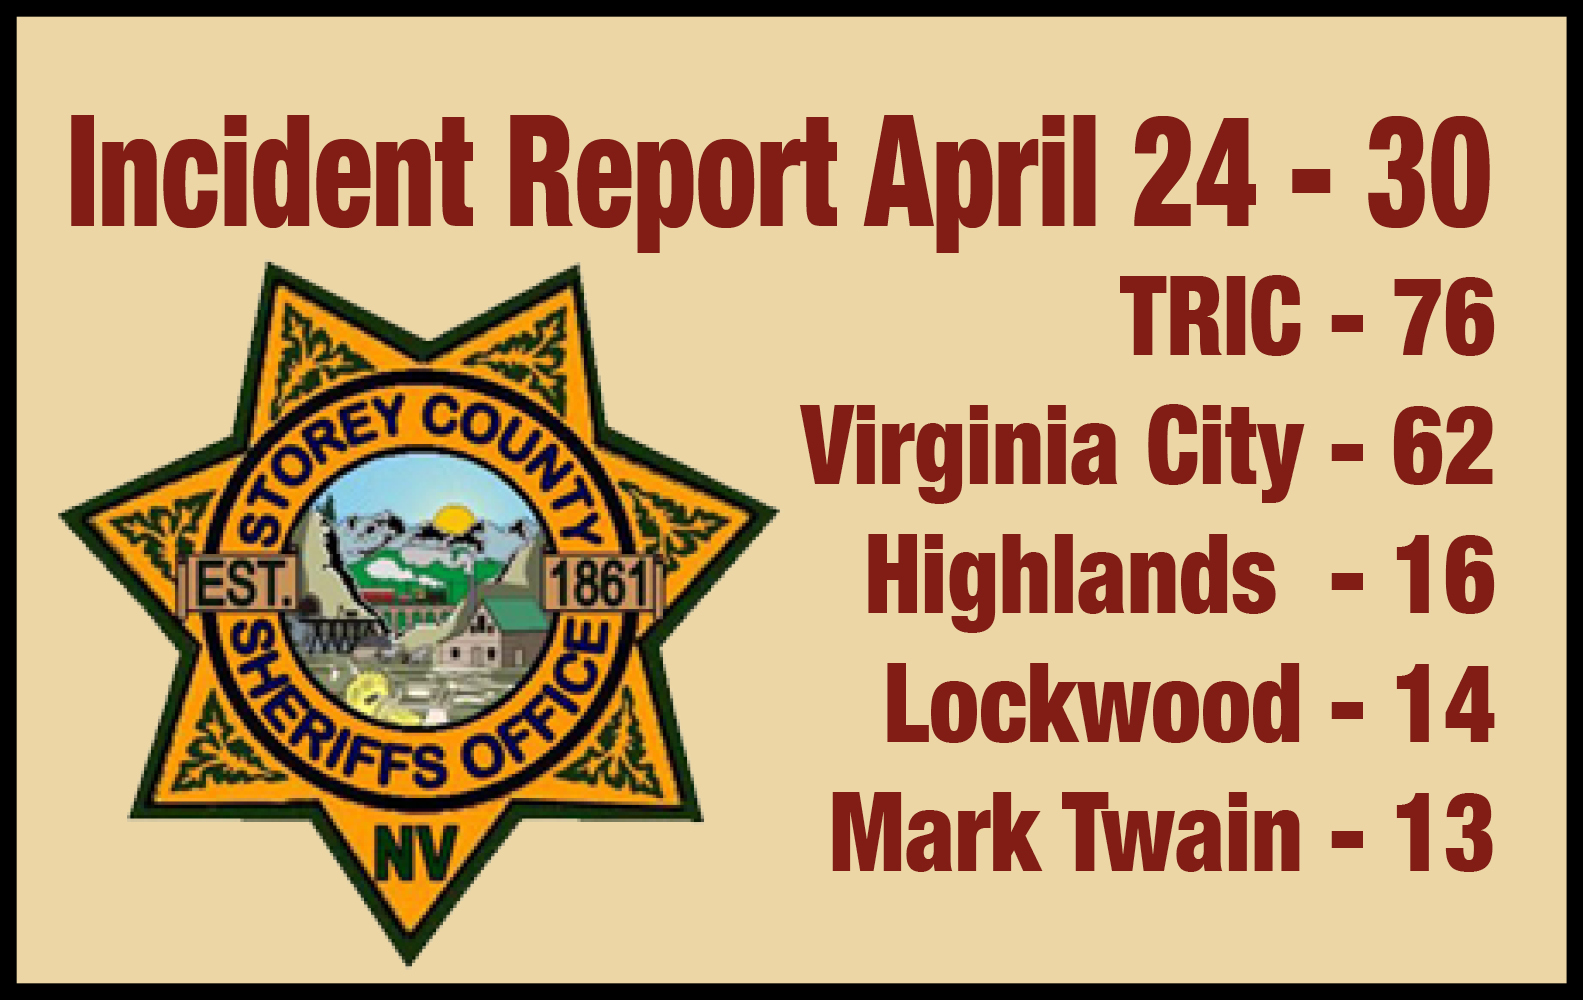 SCSO Incident Report